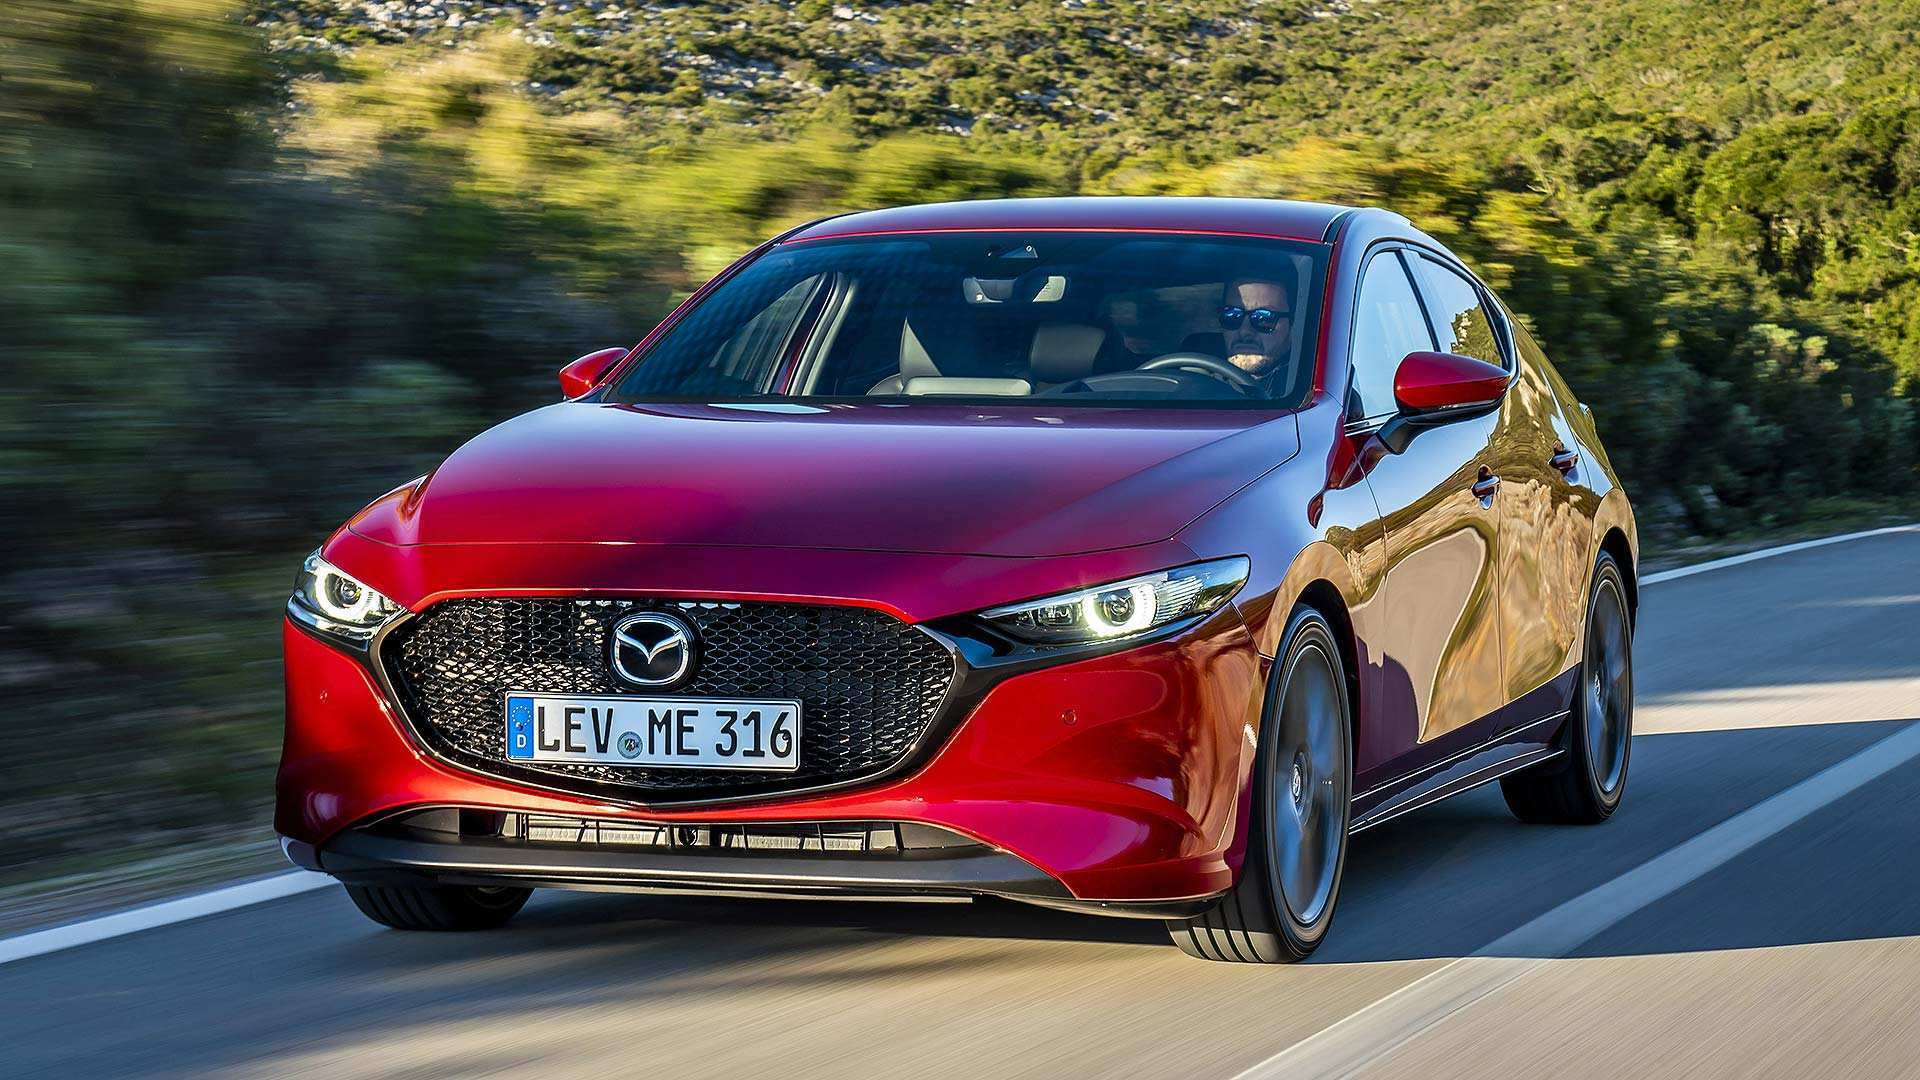 65 Gallery of New Xe Mazda 2019 Spesification Speed Test for New Xe Mazda 2019 Spesification